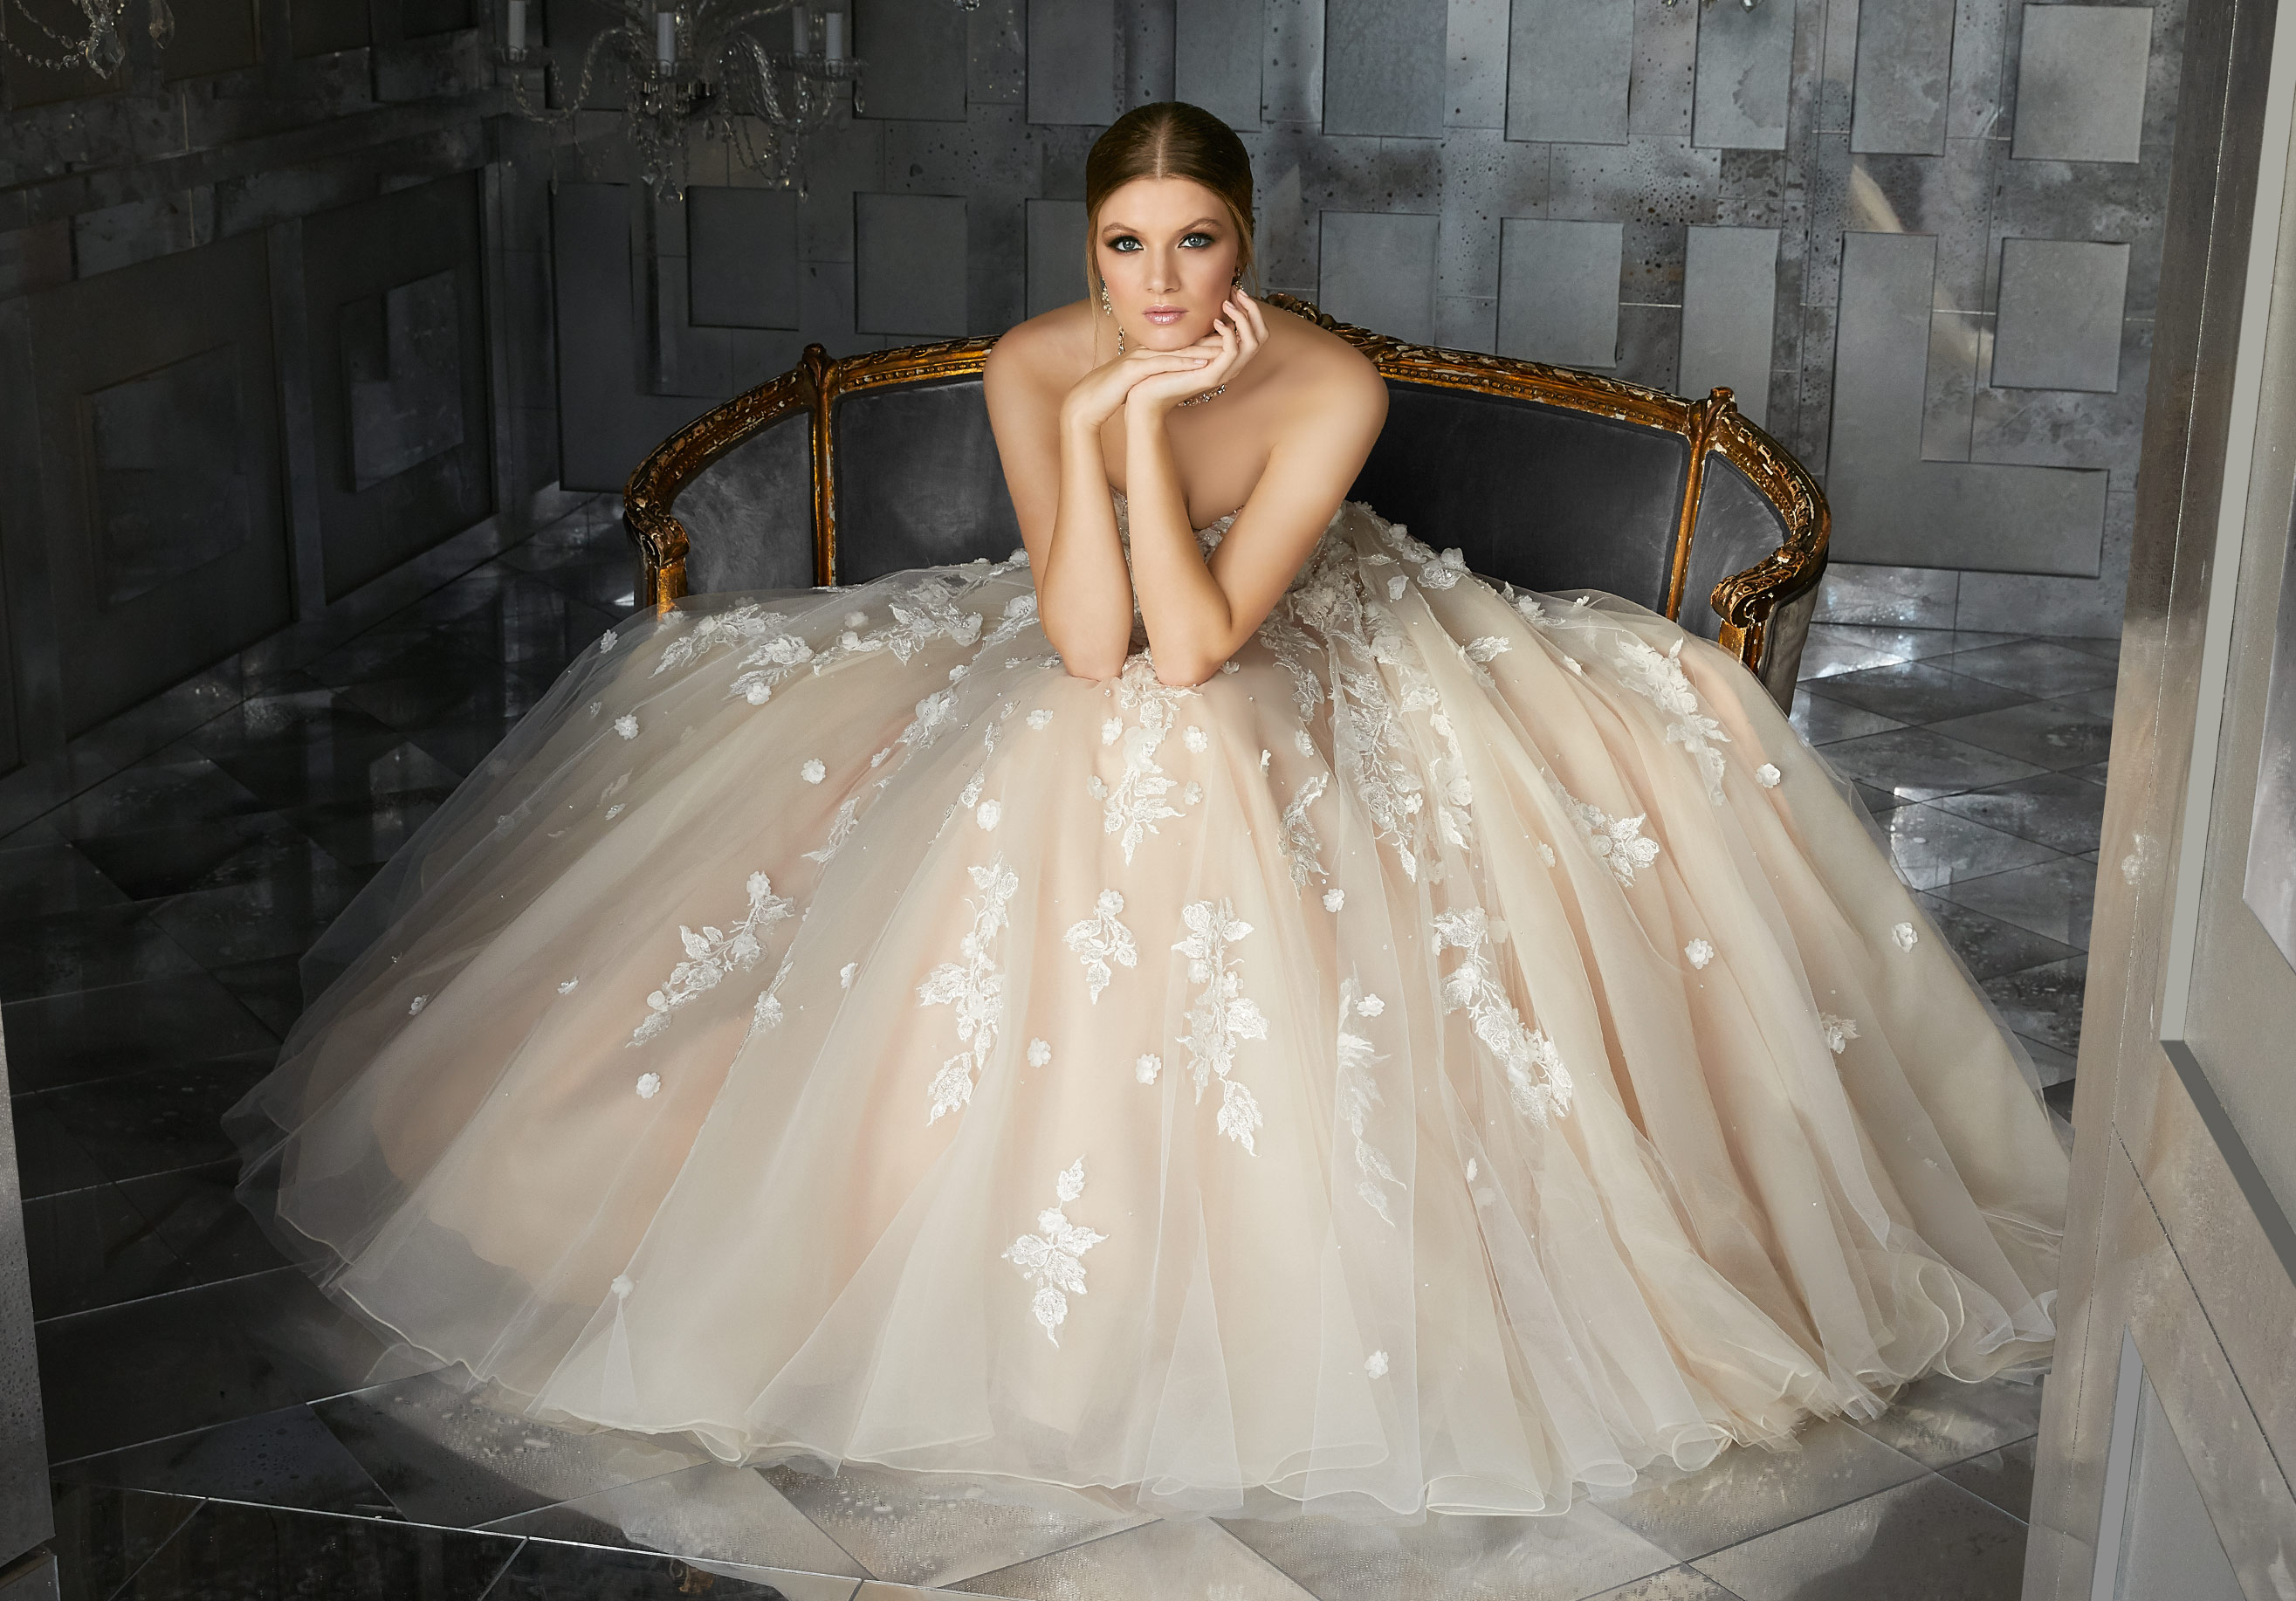 prom dress stores mcallen tx,prom dresses 2018 mcallen tx,wedding dress mcallen,evening dresses stores at mcallen, texas,Party Dresses McAllen TX,Plus Size Dresses McAllen TX,Bridal McAllen TX,Funny Mother of the Bride Dress,Prom Dresses in McAllen TX,For Moms of Brides Wedding Dresses,